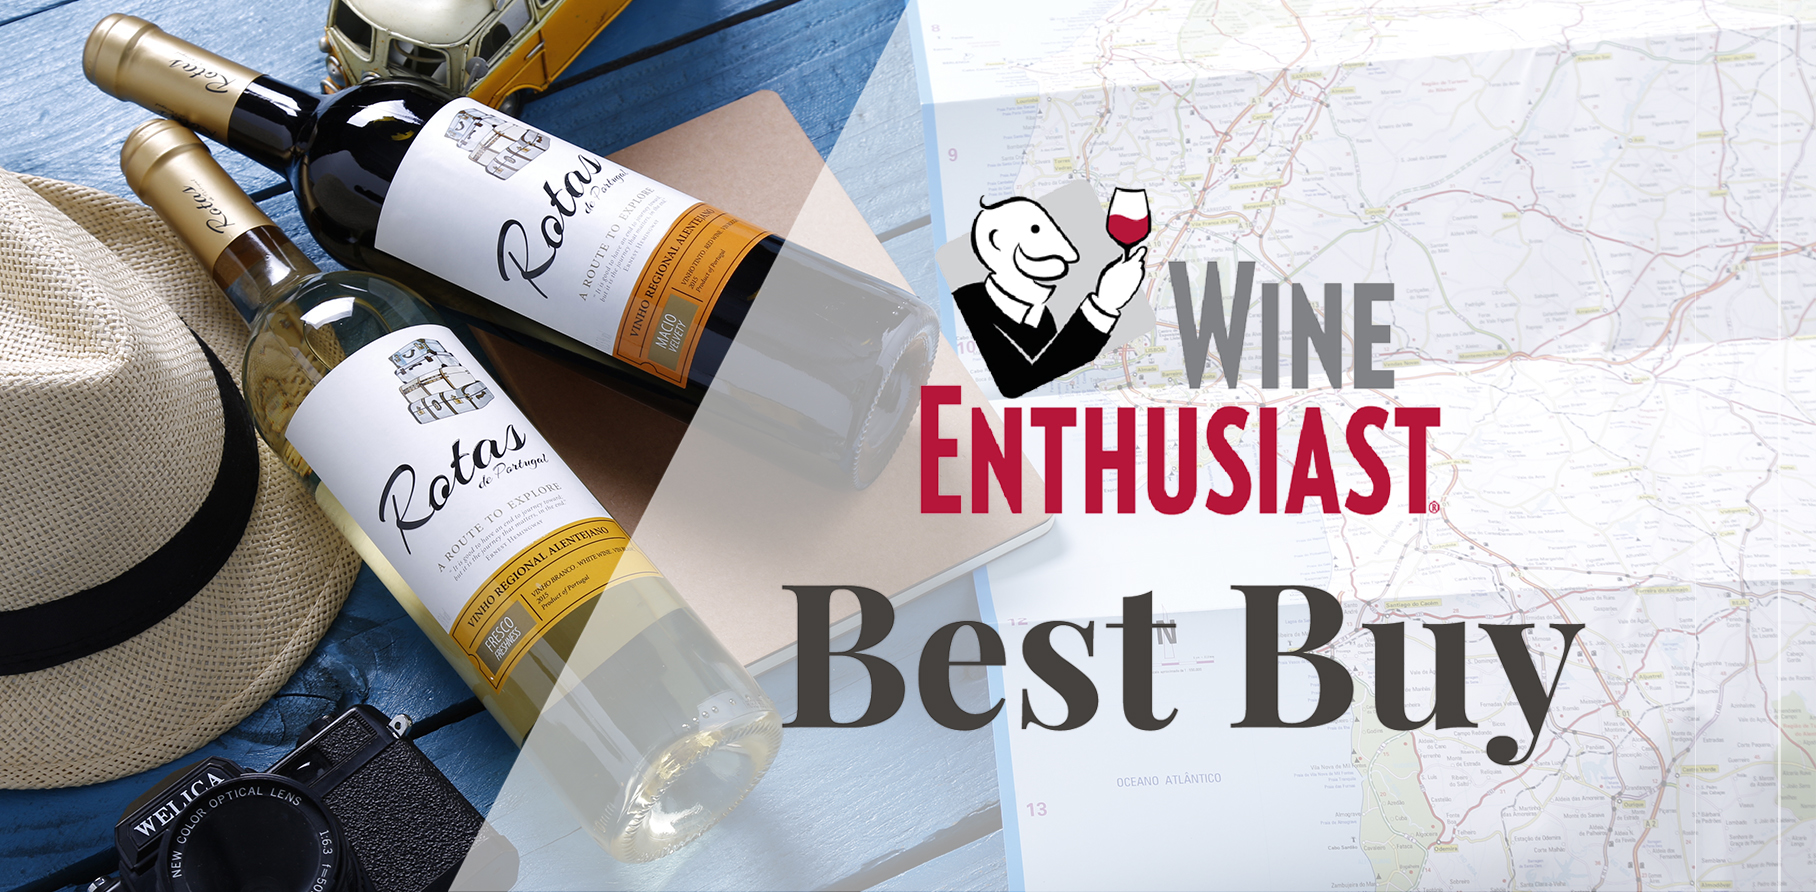 Rotas de Portugal receive Best Buy by Wine Enthusiast